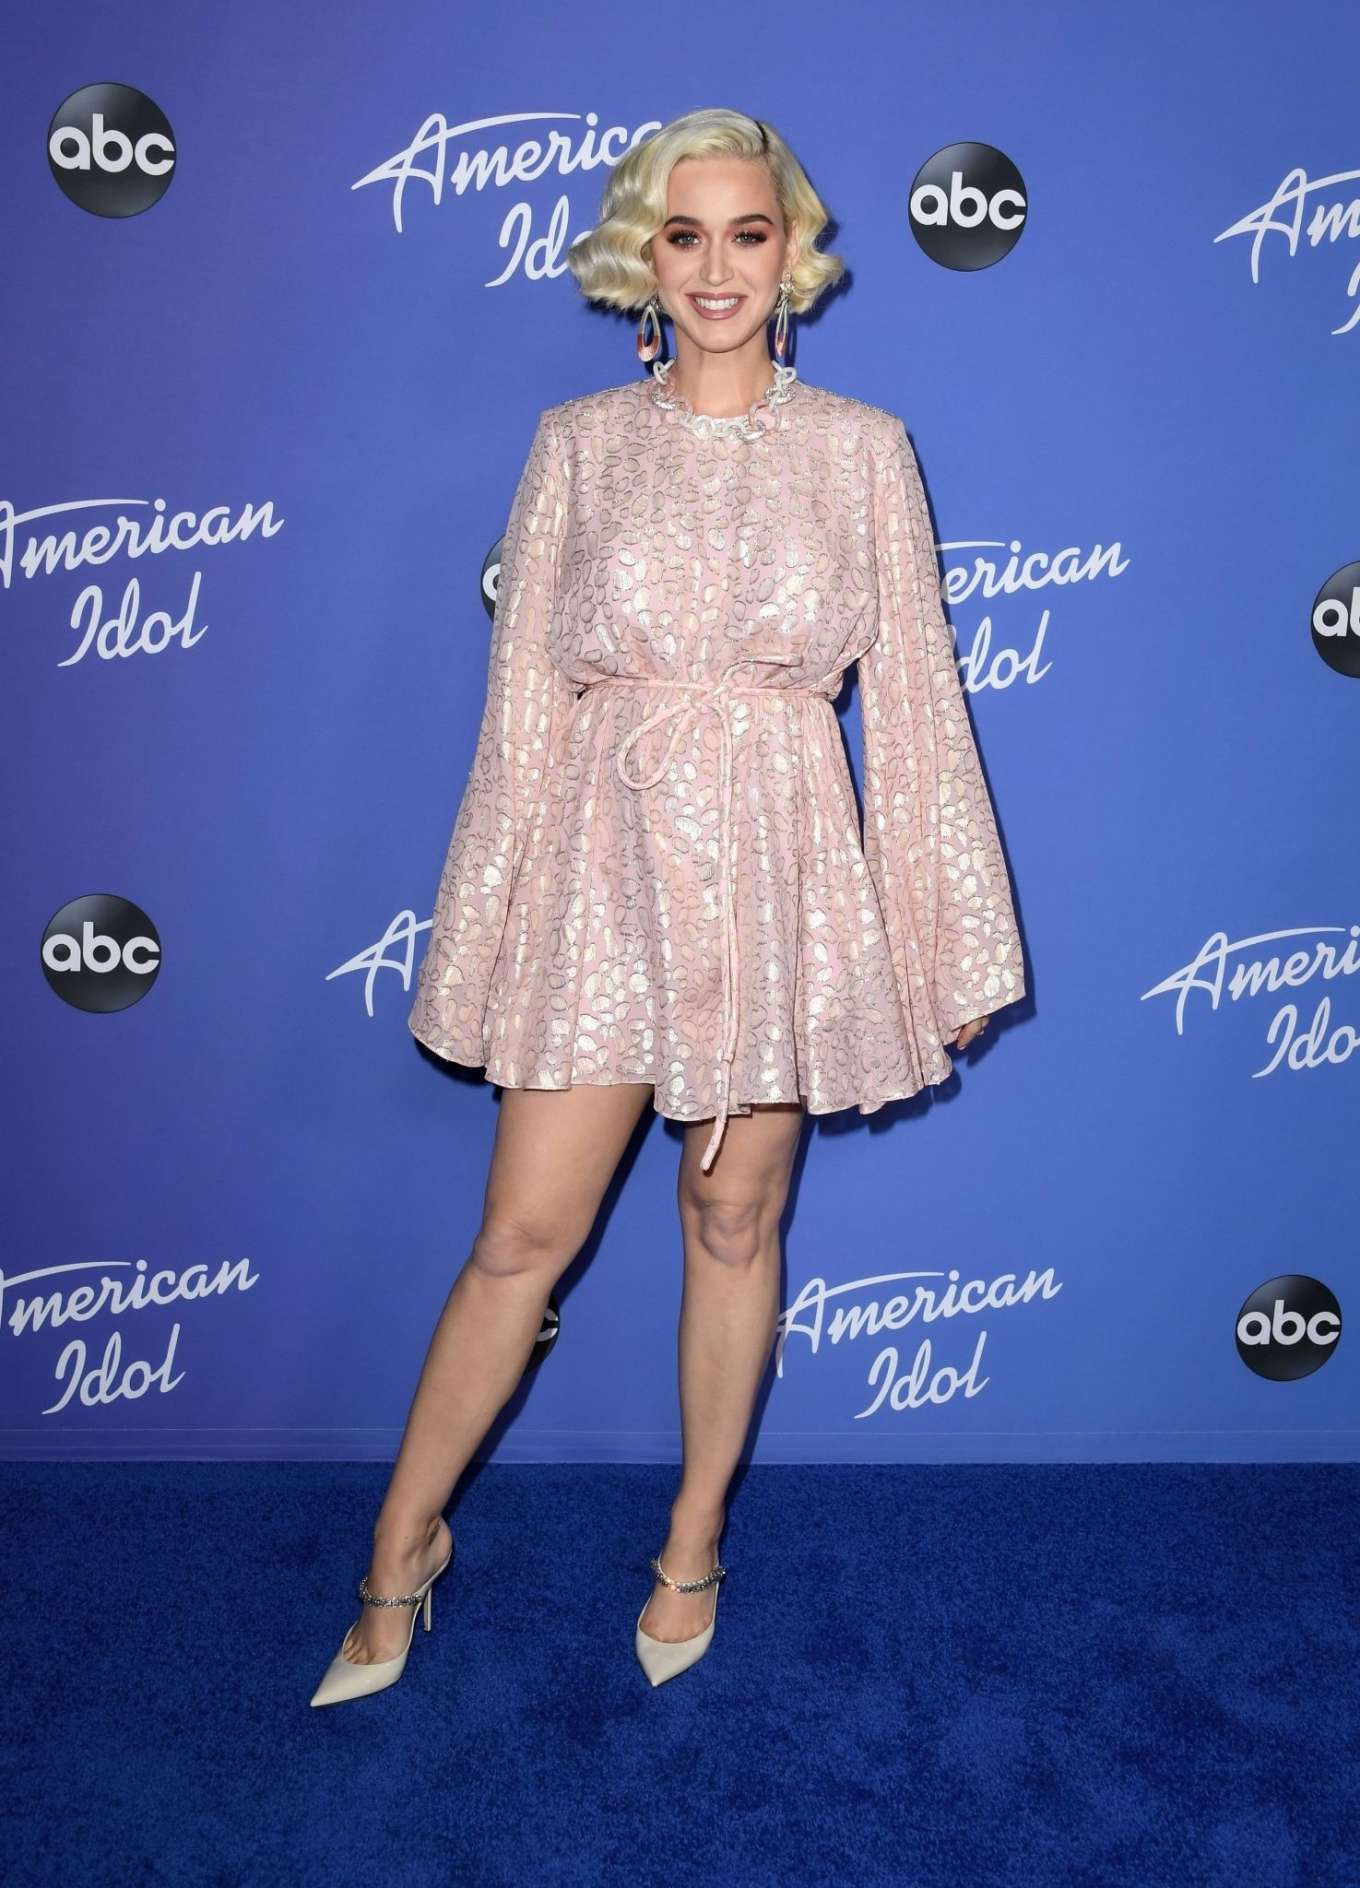 Katy Perry 2020 : Katy Perry – premiere event for new American Idol season in Hollywood-14